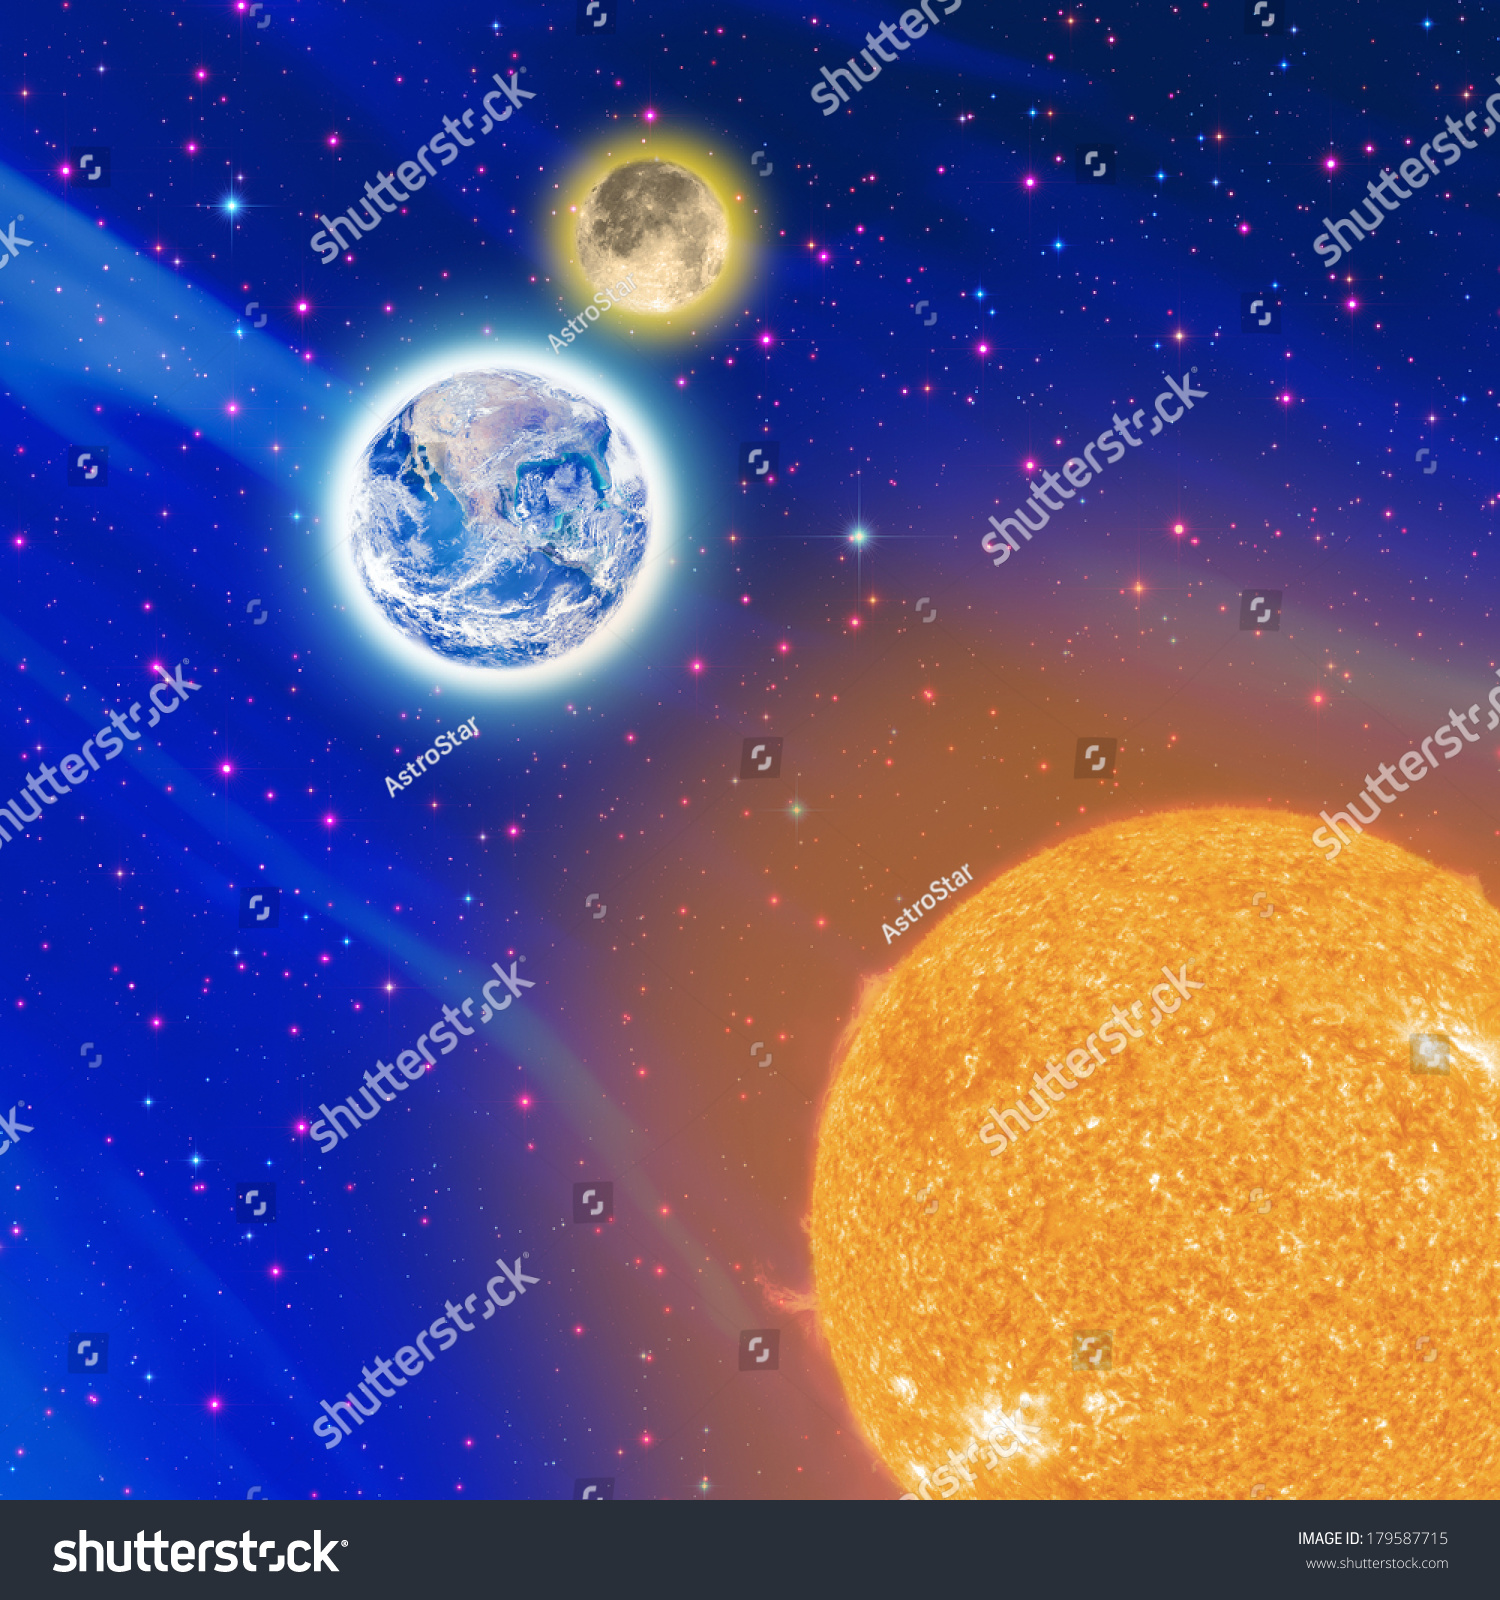 Worksheet The Sun And Stars satellite view on sun moon earth stock photo 179587715 shutterstock the and furnished by nasa